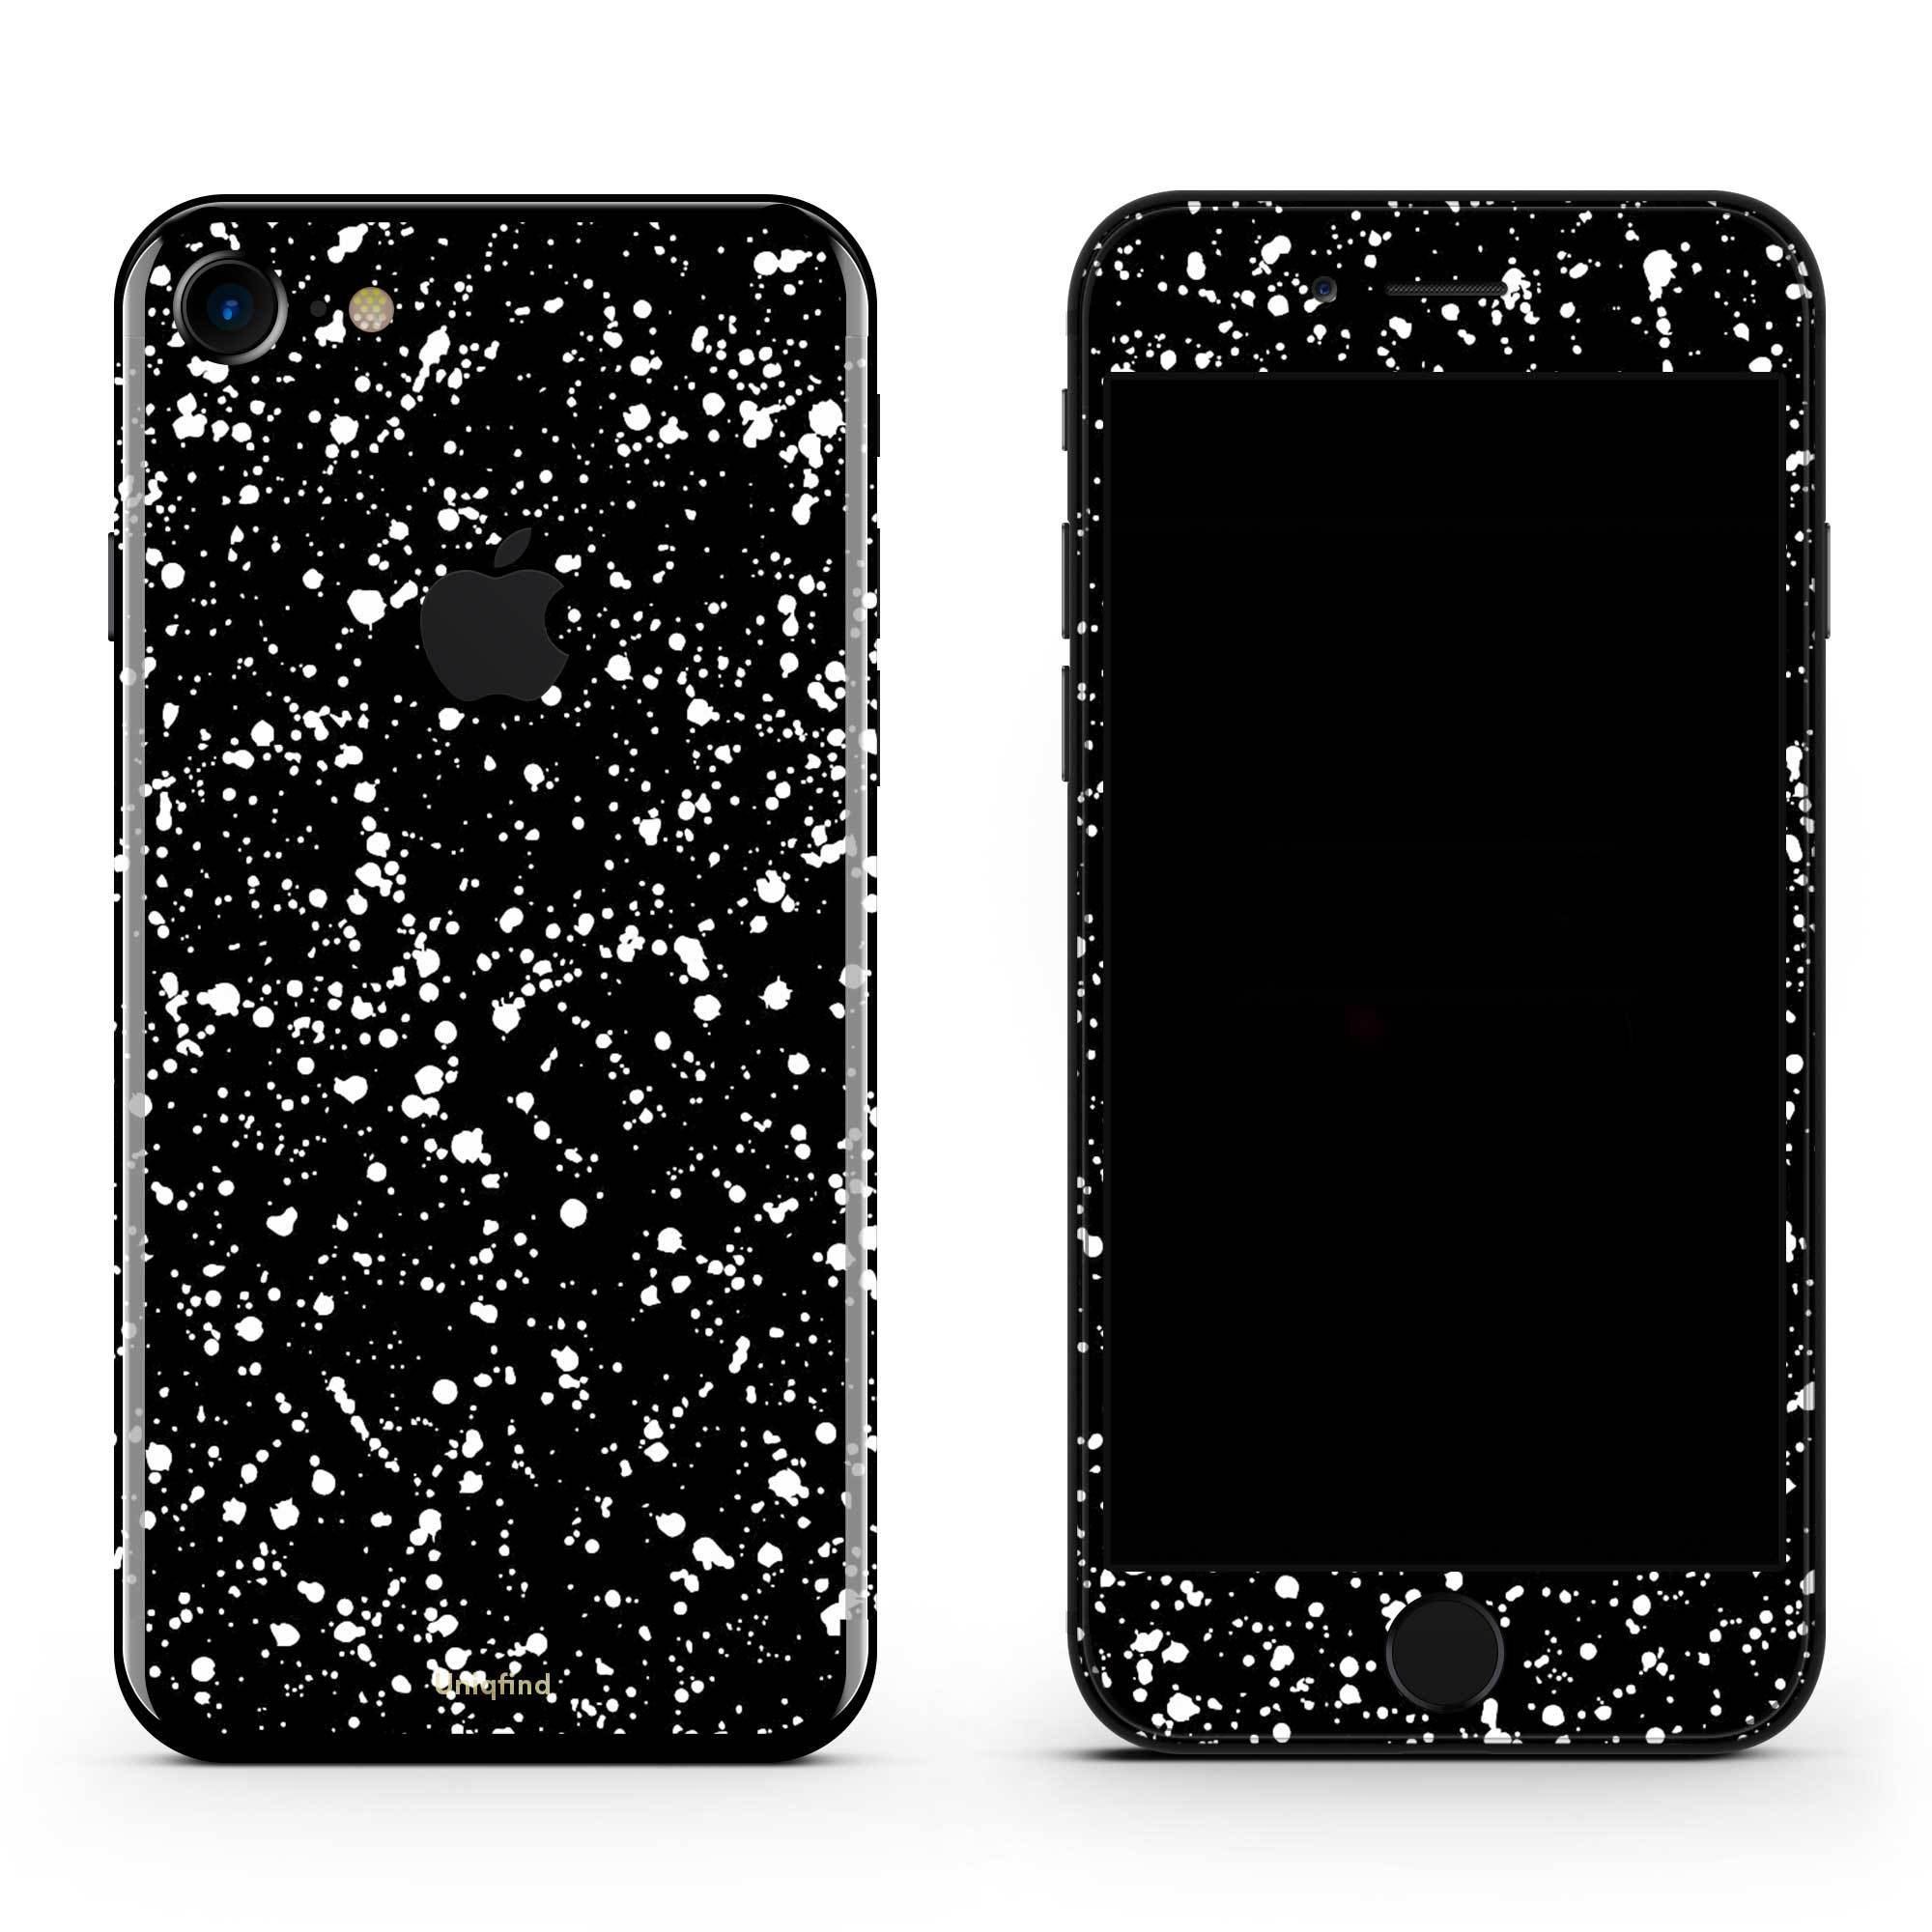 Black Speckle iPhone 8 Skin + Case